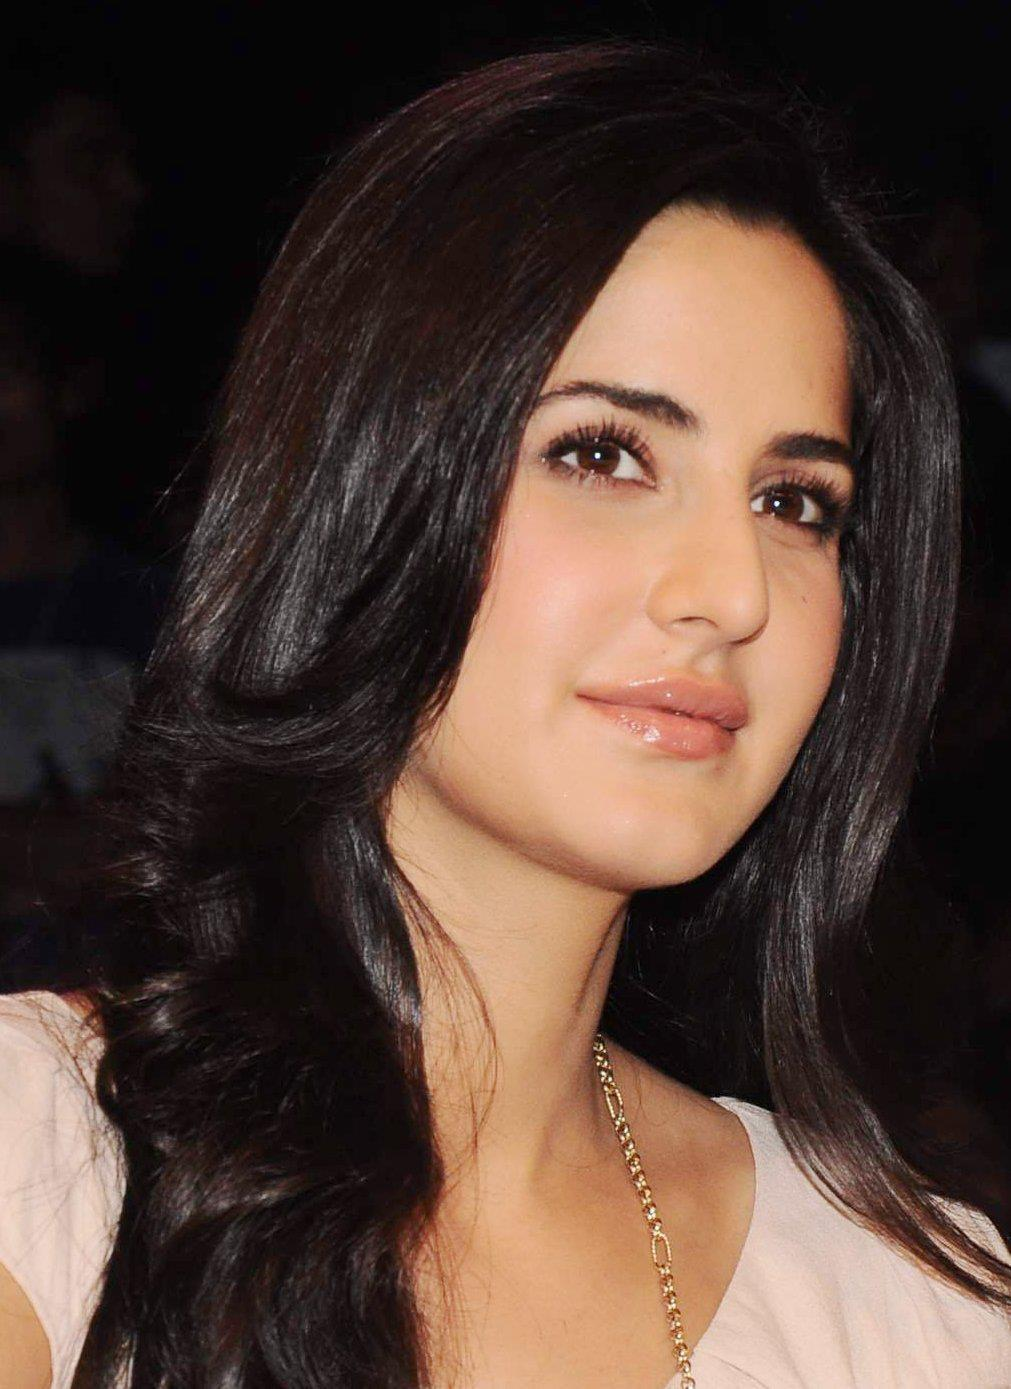 gashti: katrina kaif photos - free download hot images of katrina